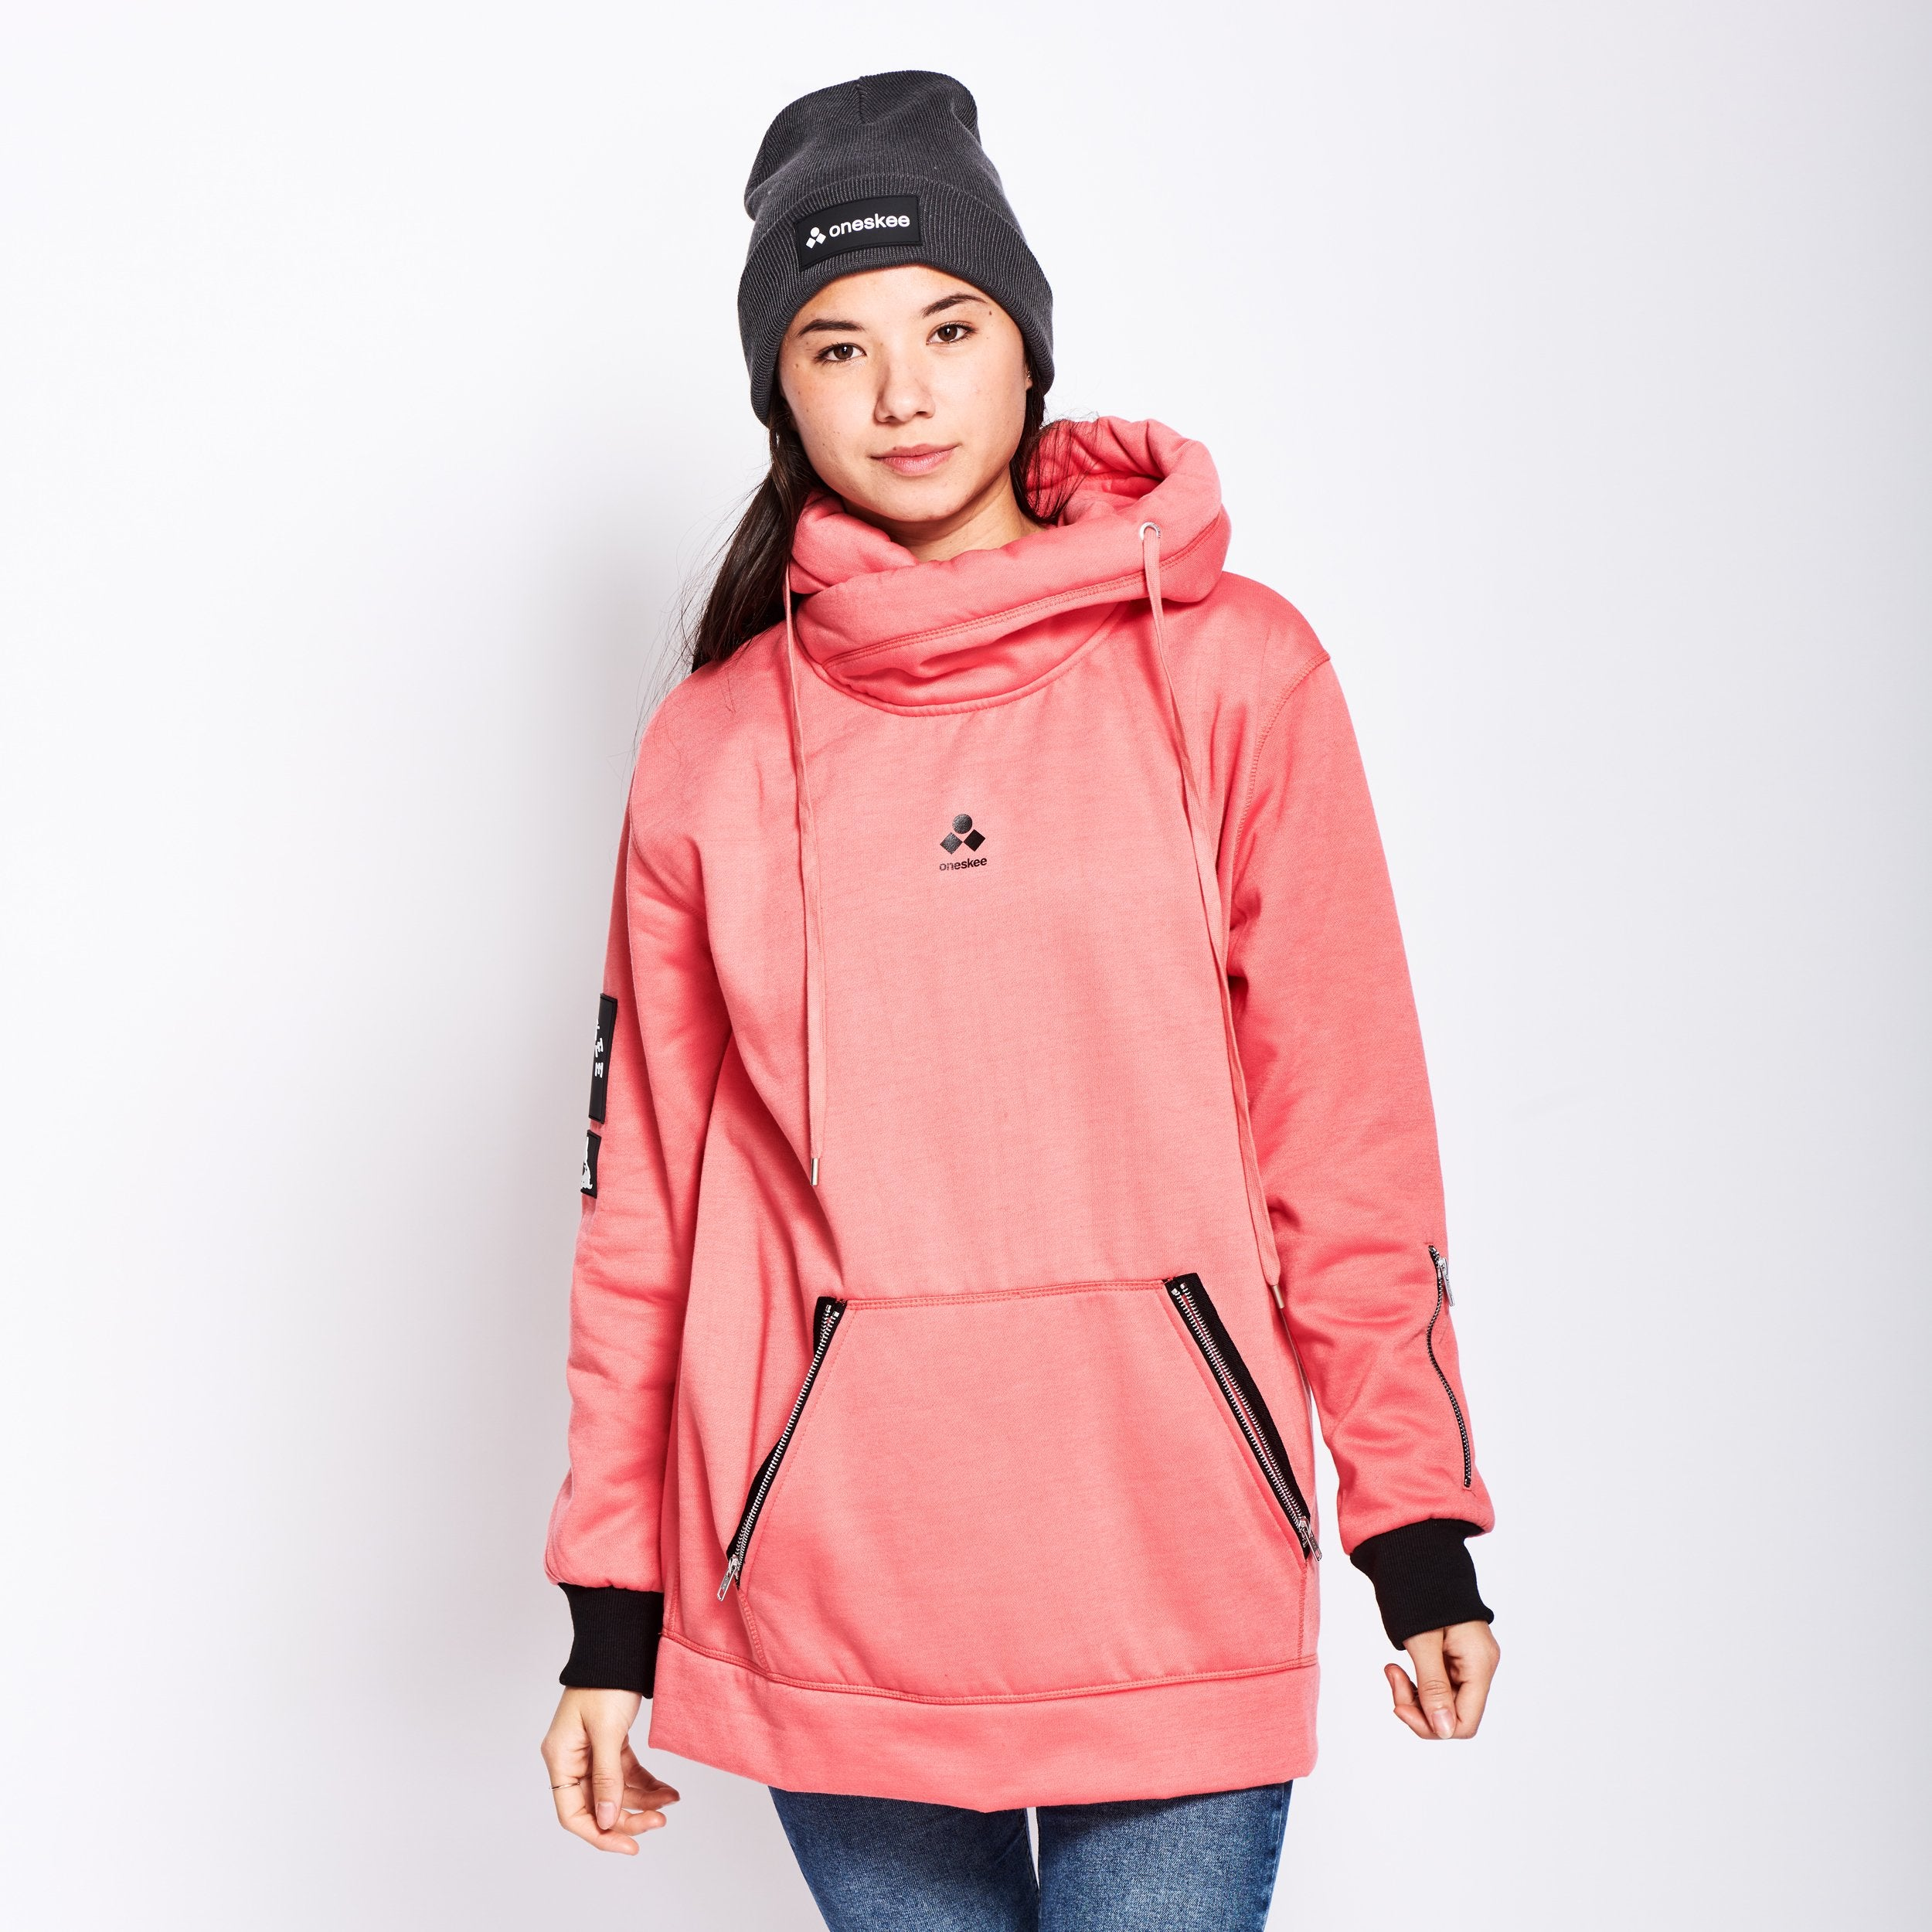 Women's Technical X-Neck Hoodie  - Pink image 5